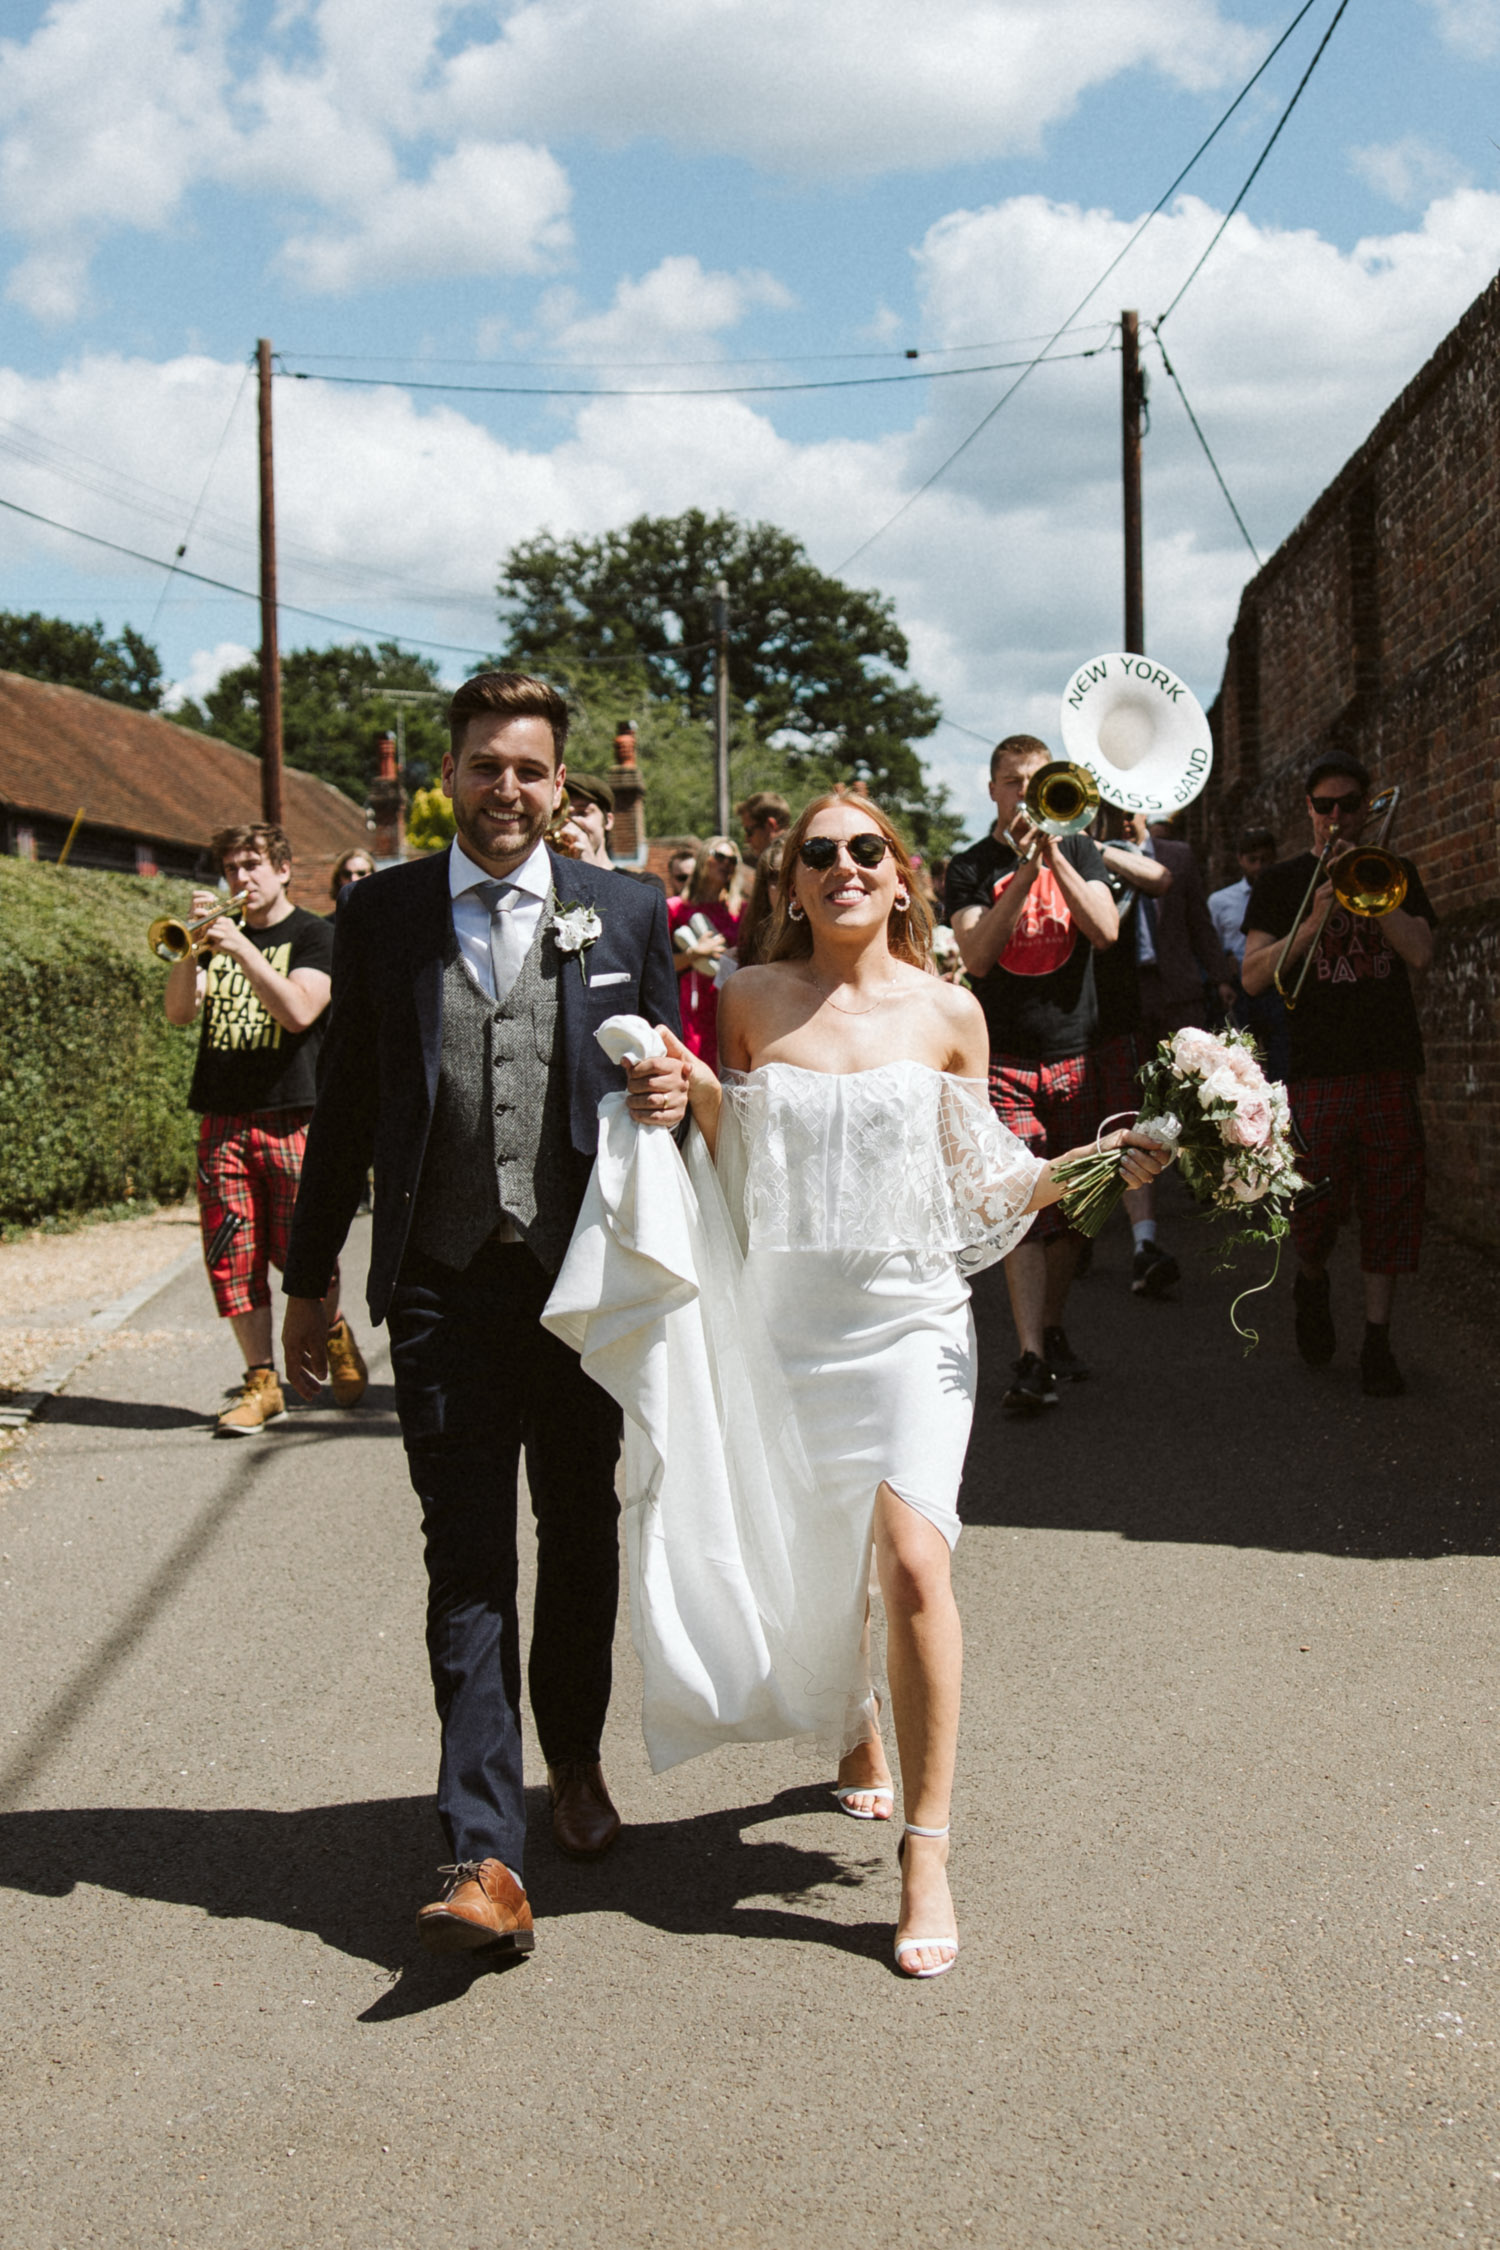 the bride and groom and the New York brass band leading guests through the village